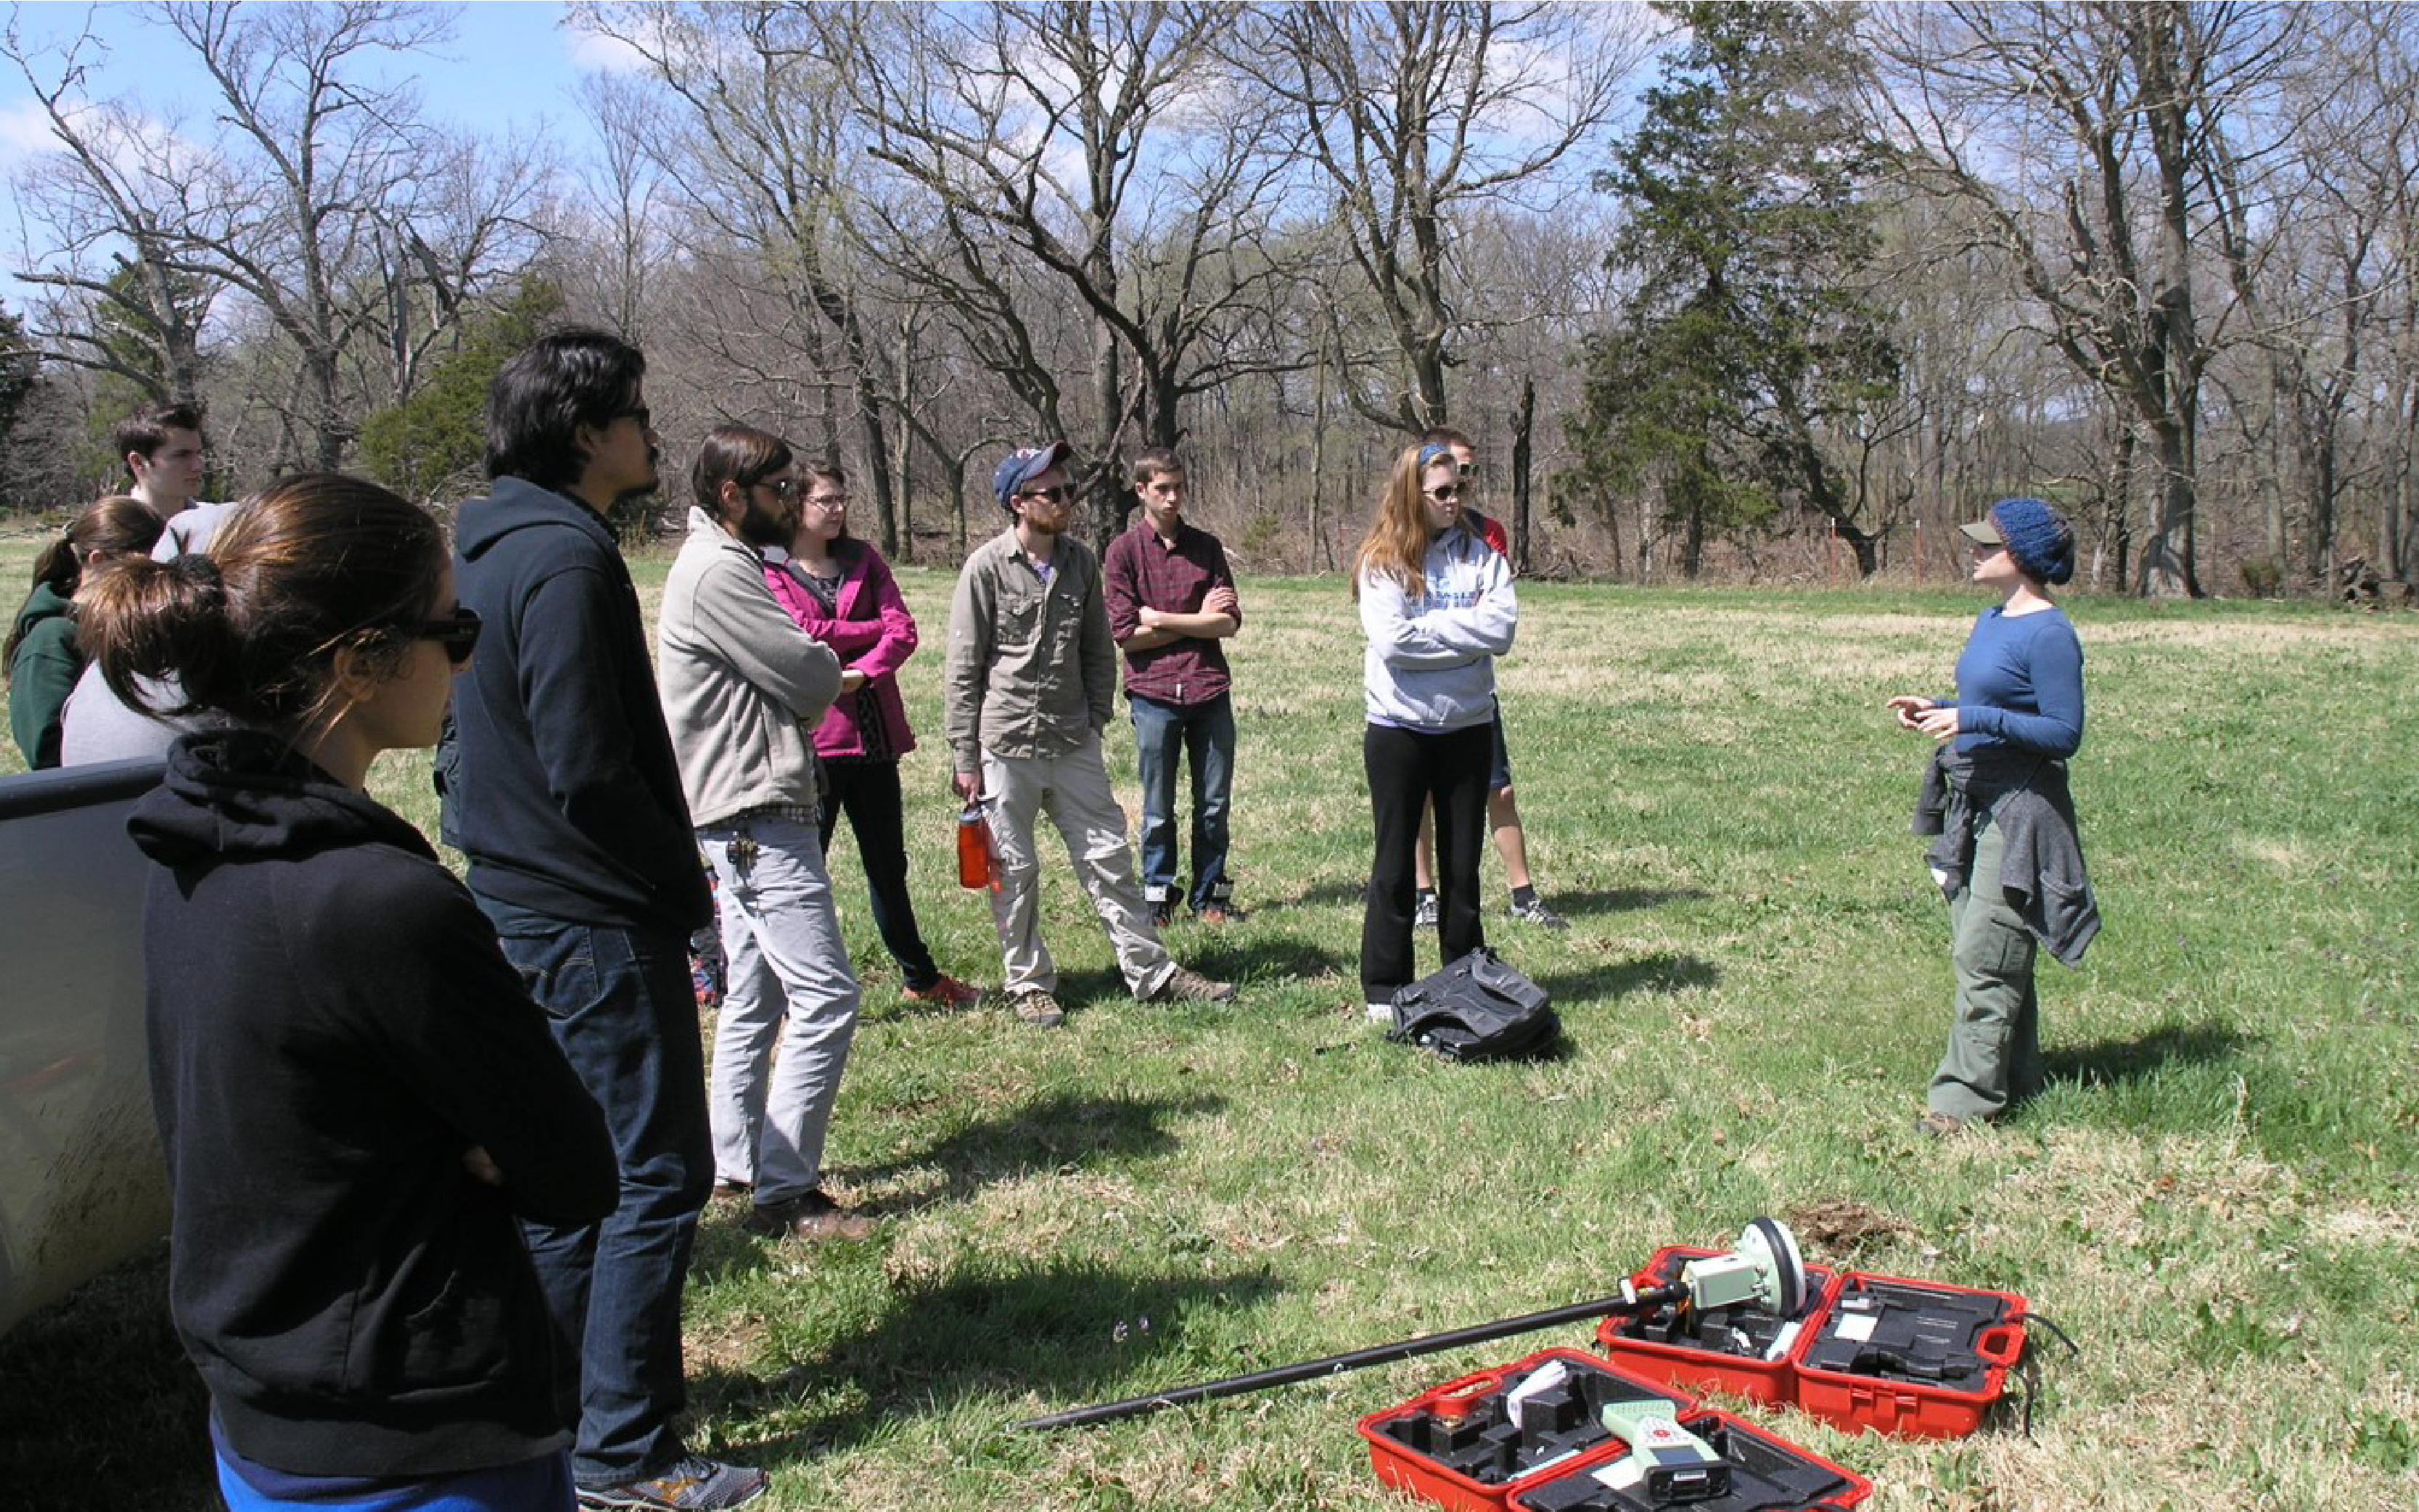 researcher Rachel Opitz instructs class of students on fieldwork techniques